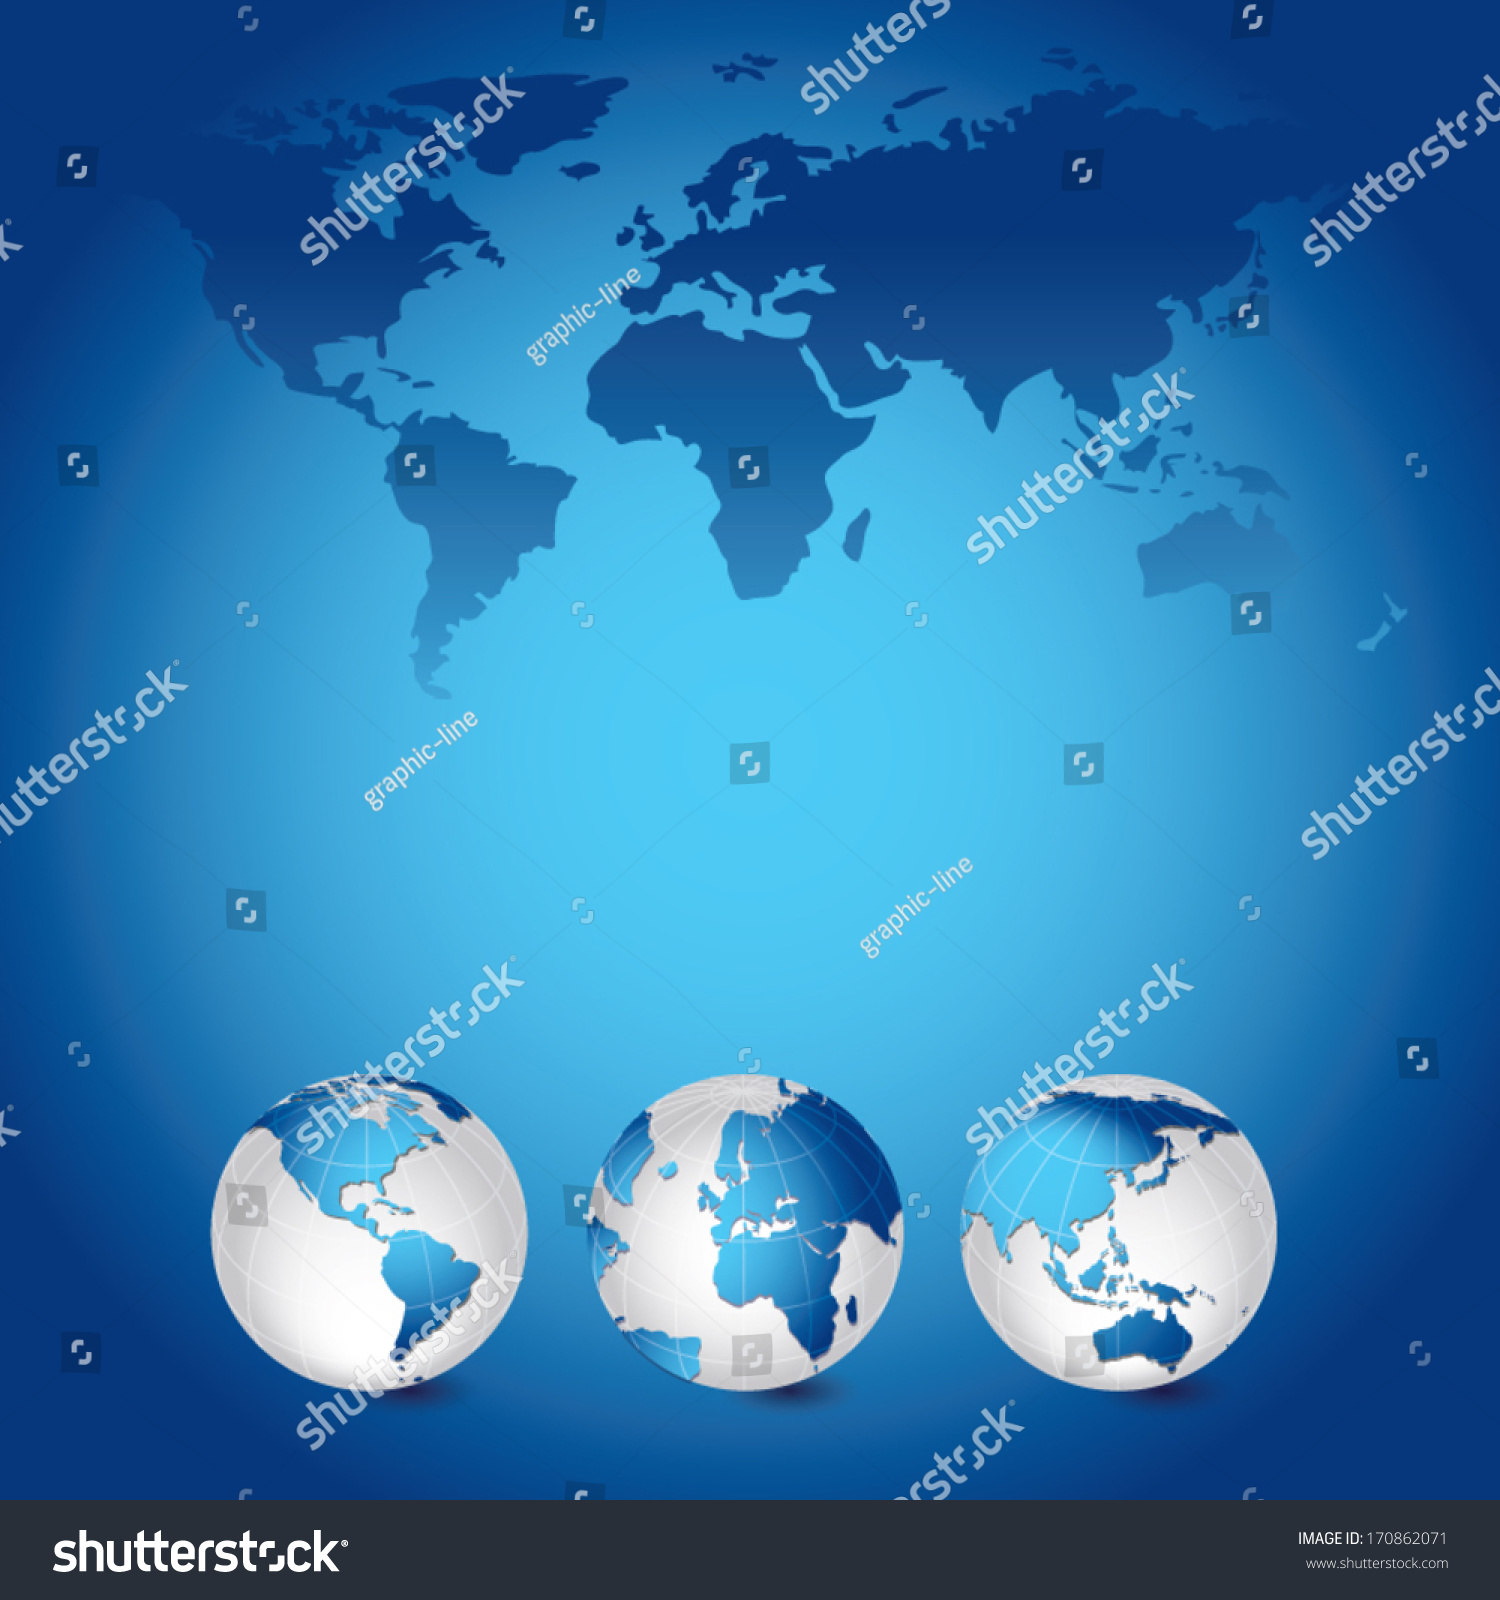 World Map Globes Vector Illustration Global Stock Vector 170862071     World Map Globes Vector Illustration Global Stock Vector 170862071    Shutterstock